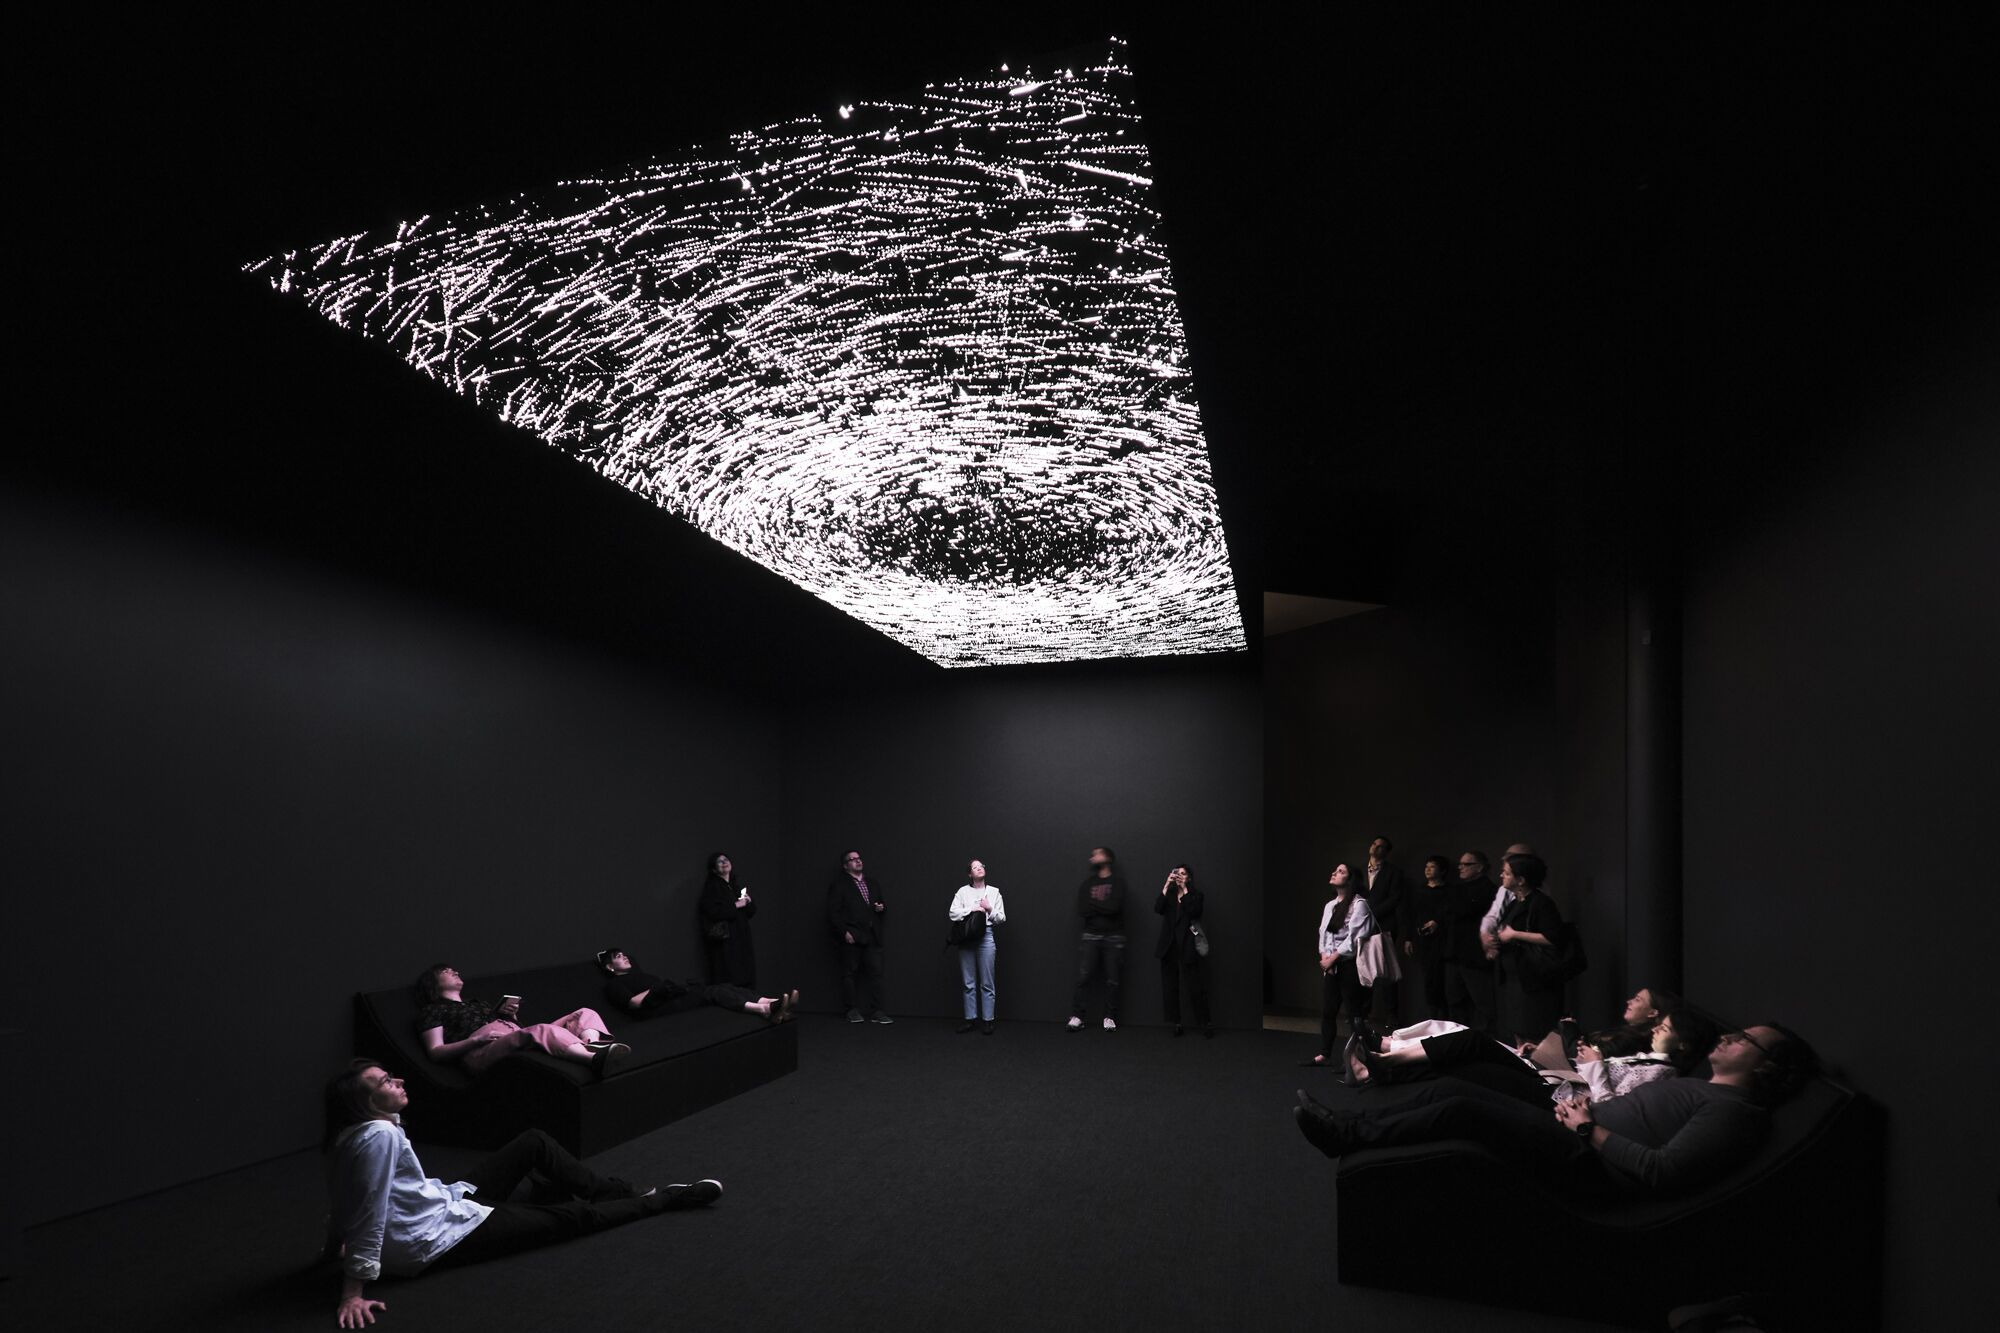 A roomful of people sit and stand beneath a light installation mimicking the stars of a night sky